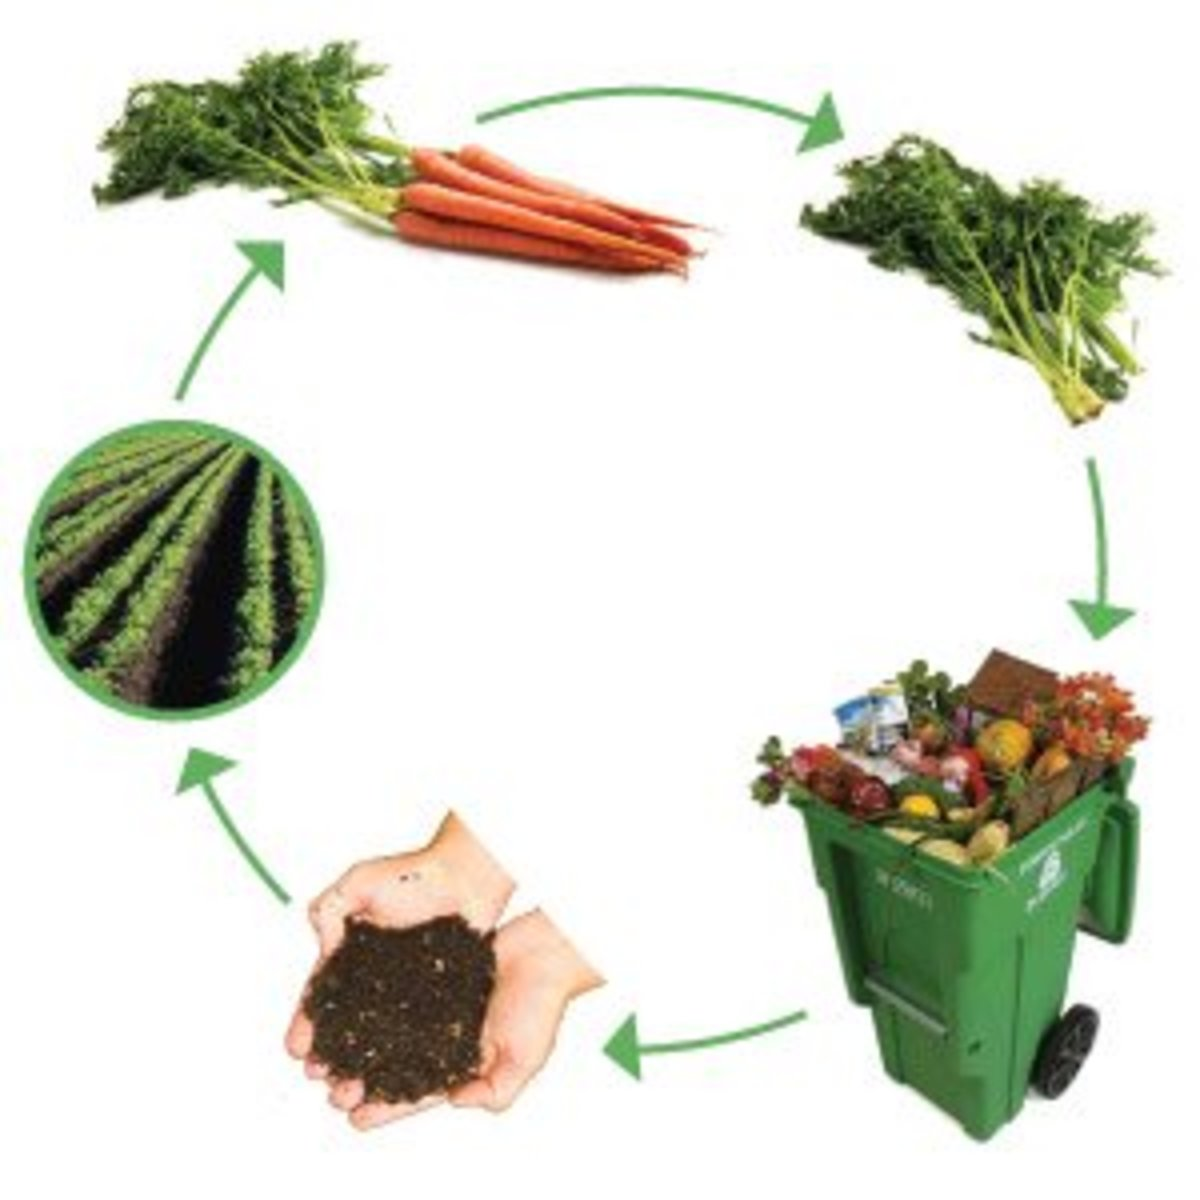 The cycle of composting